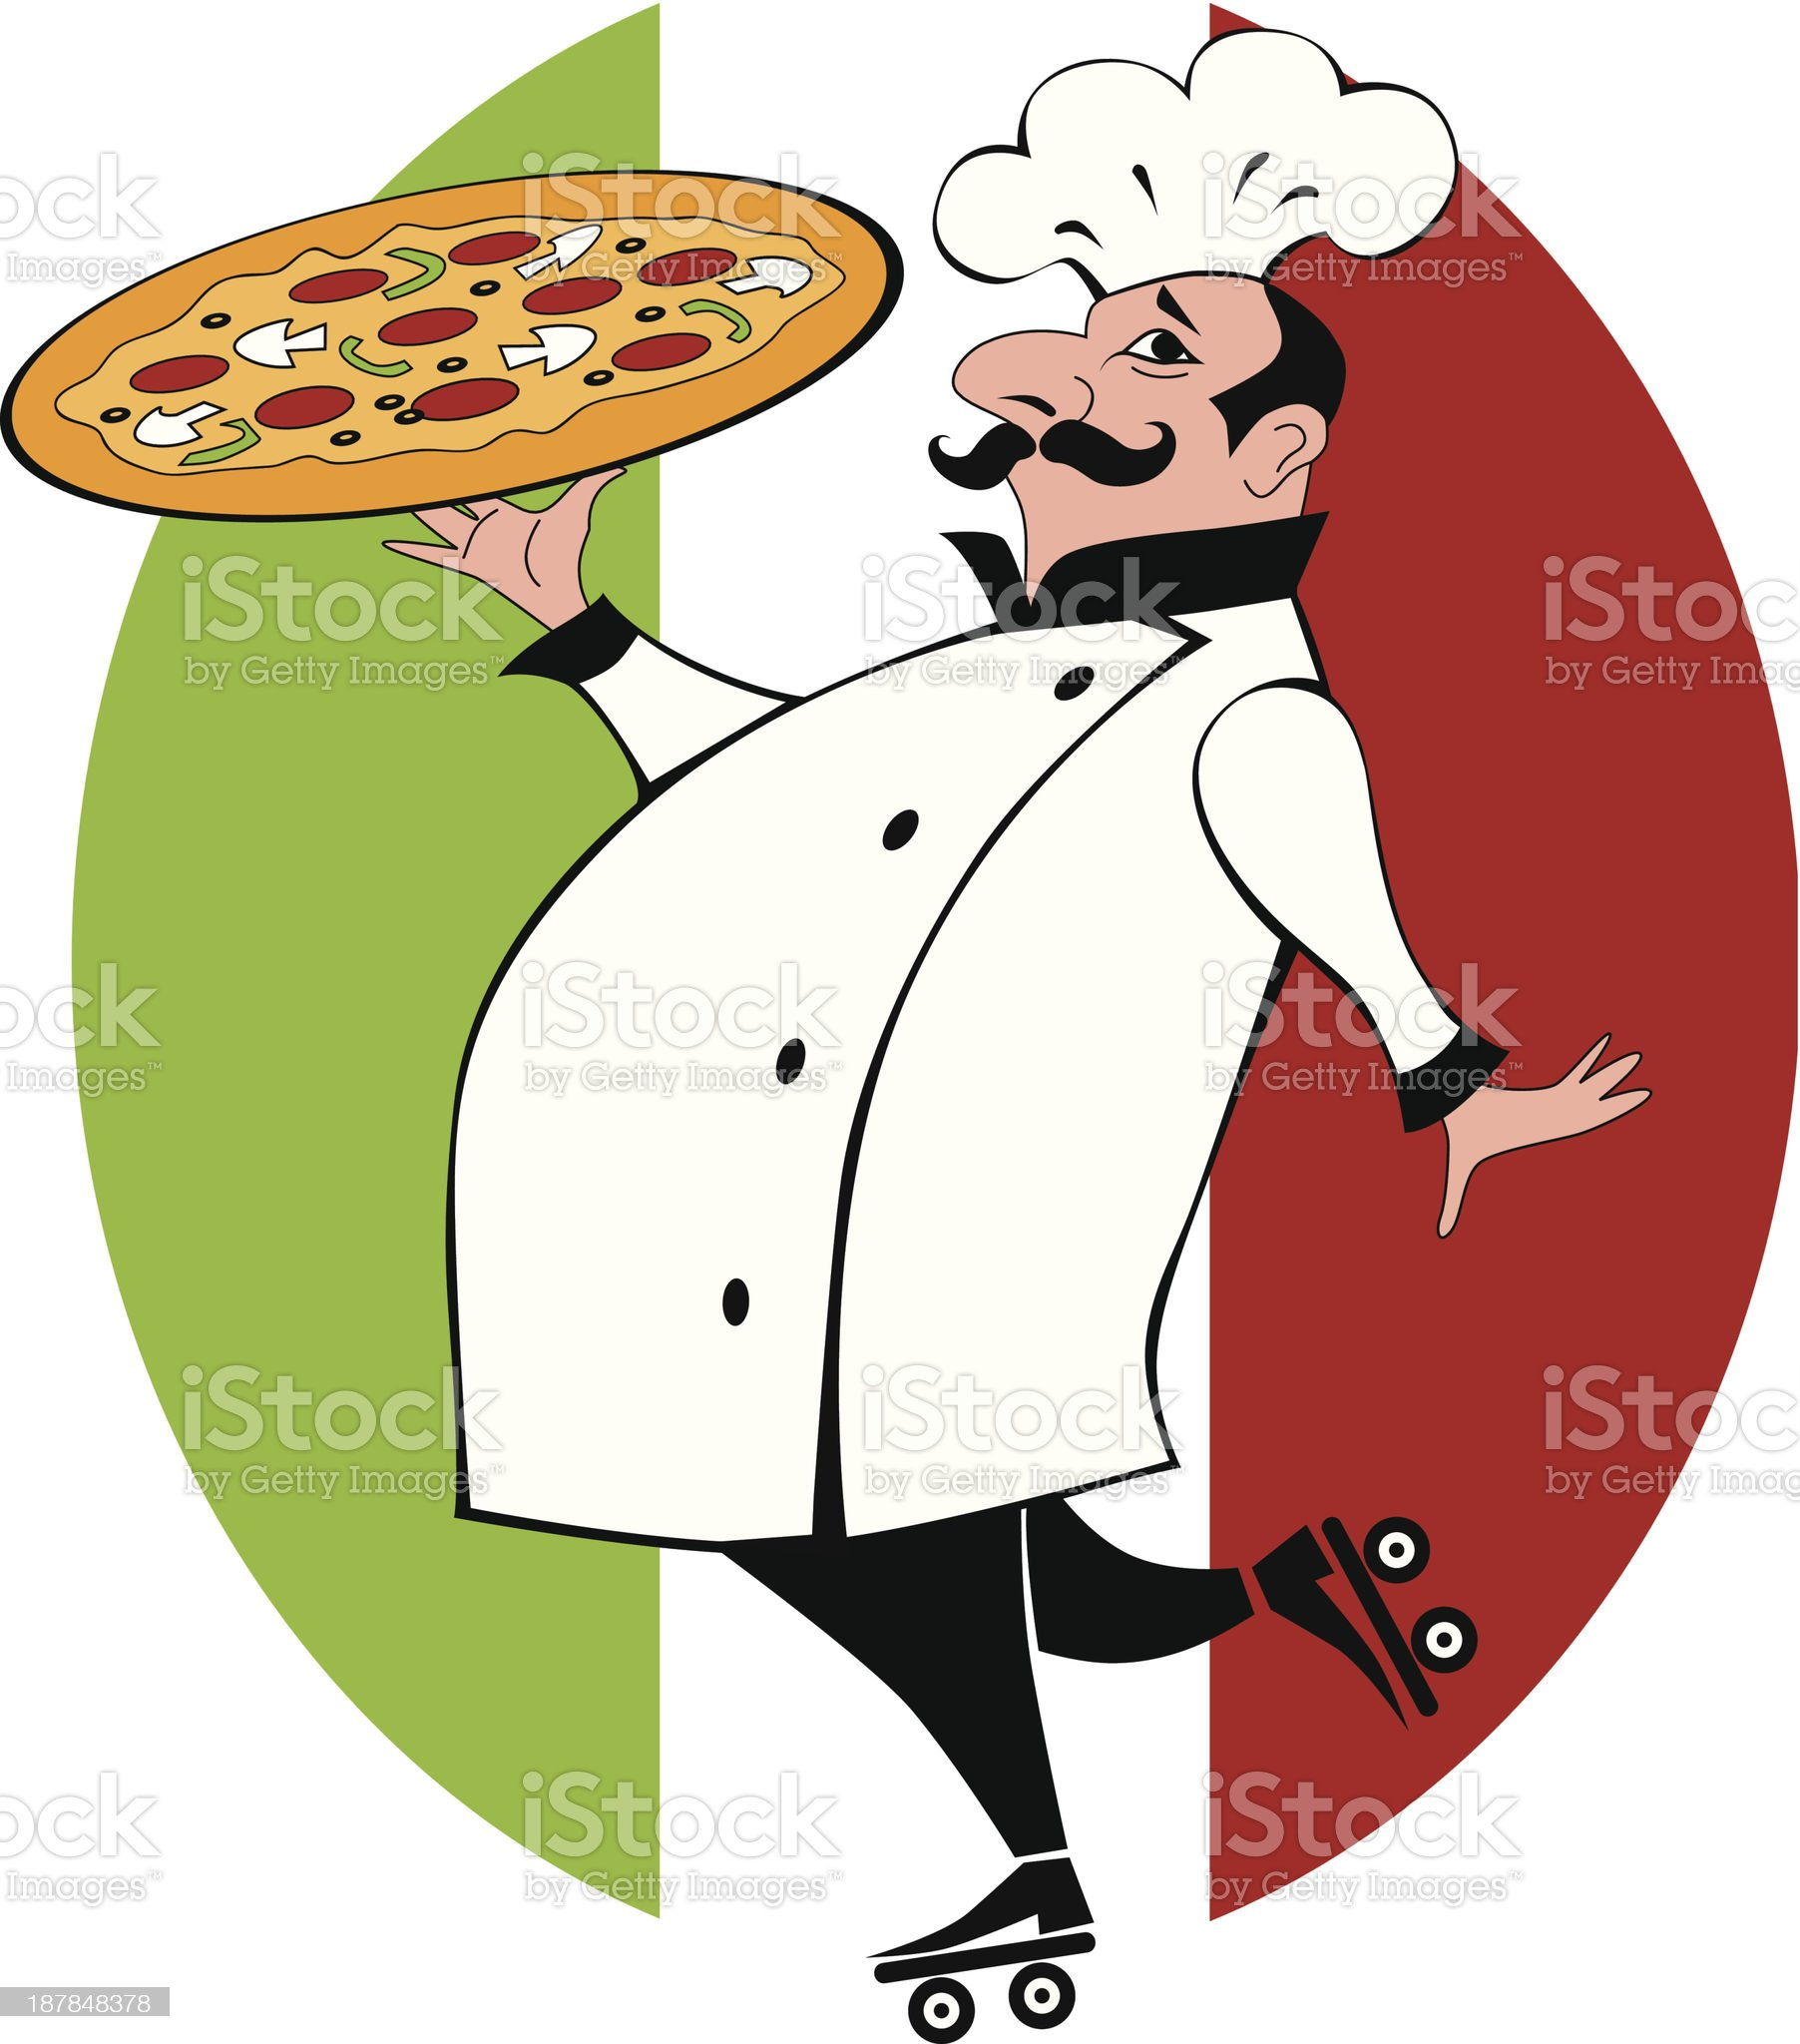 Chef on roller skates bringing a pizza royalty-free stock vector art